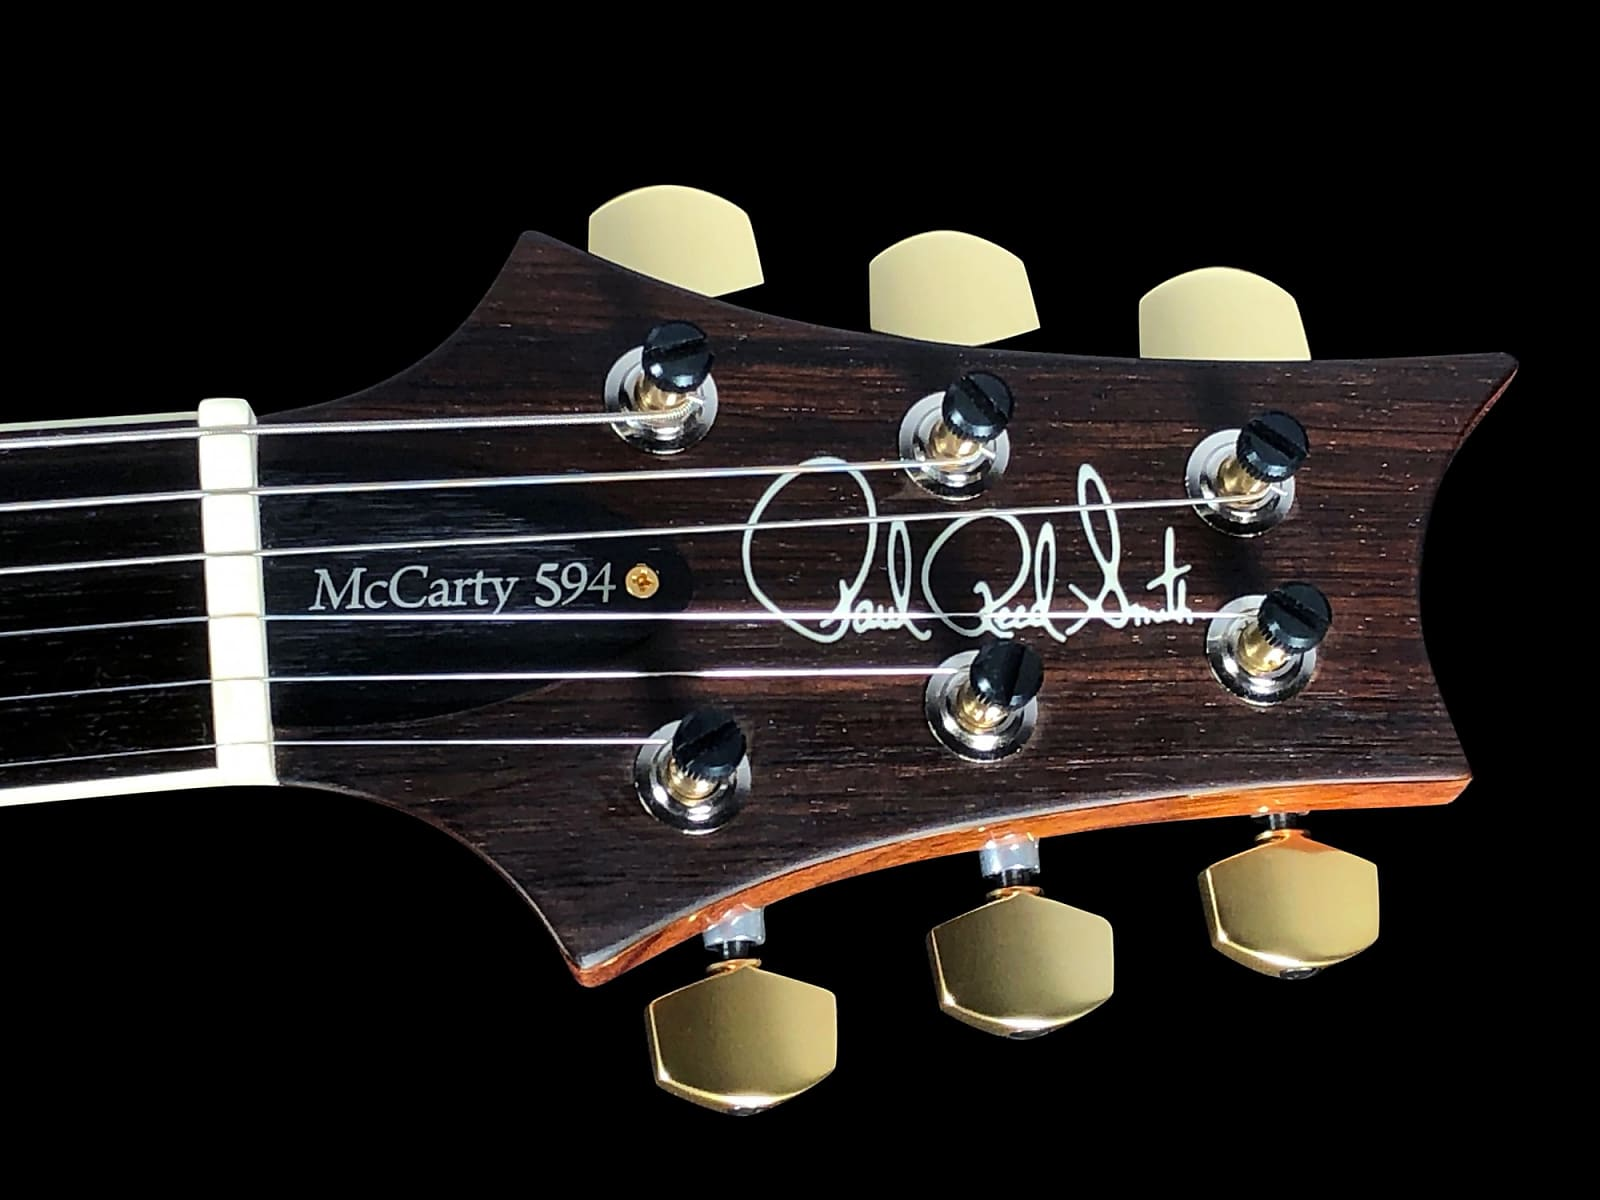 2018 Paul Reed Smith PRS McCarty 594 Semi-Hollow Wood Library 10 Top w Single F Hole Brazilian